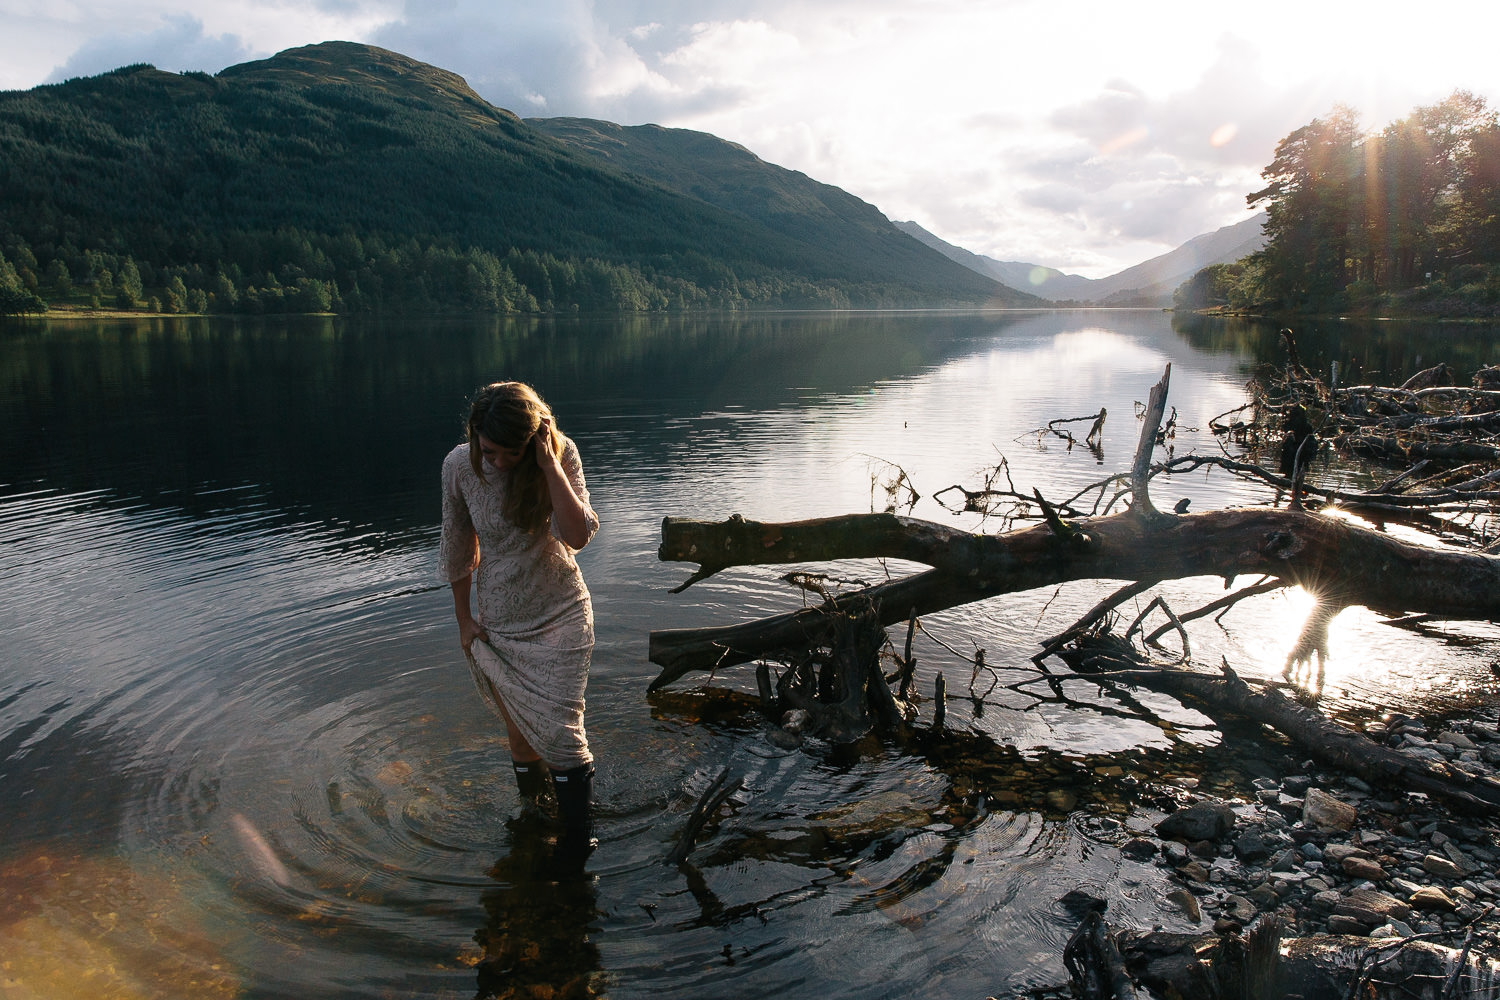 Loch-highland-elopement-wedding-6.jpg